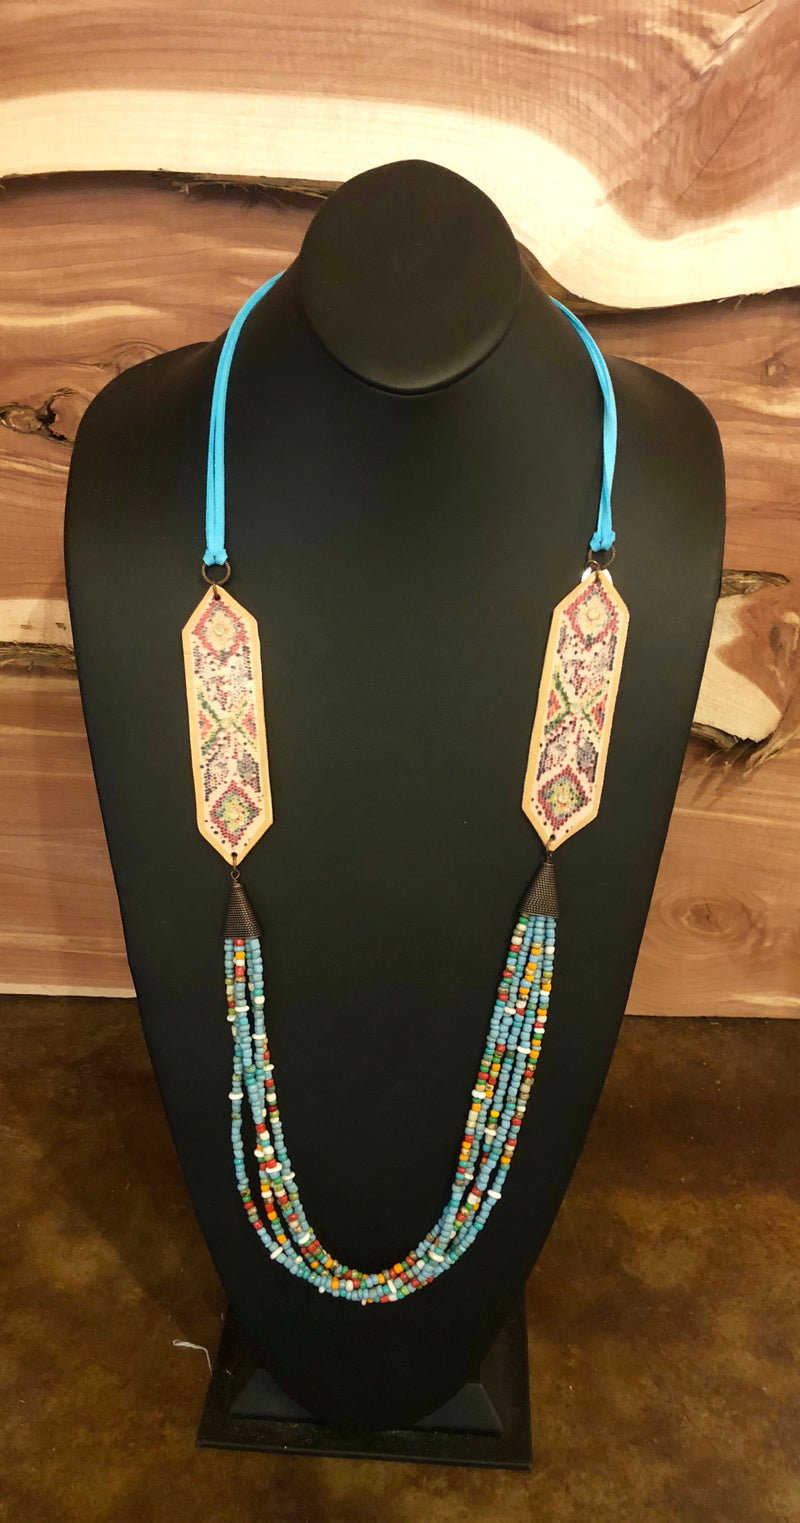 The Trading Post Necklace